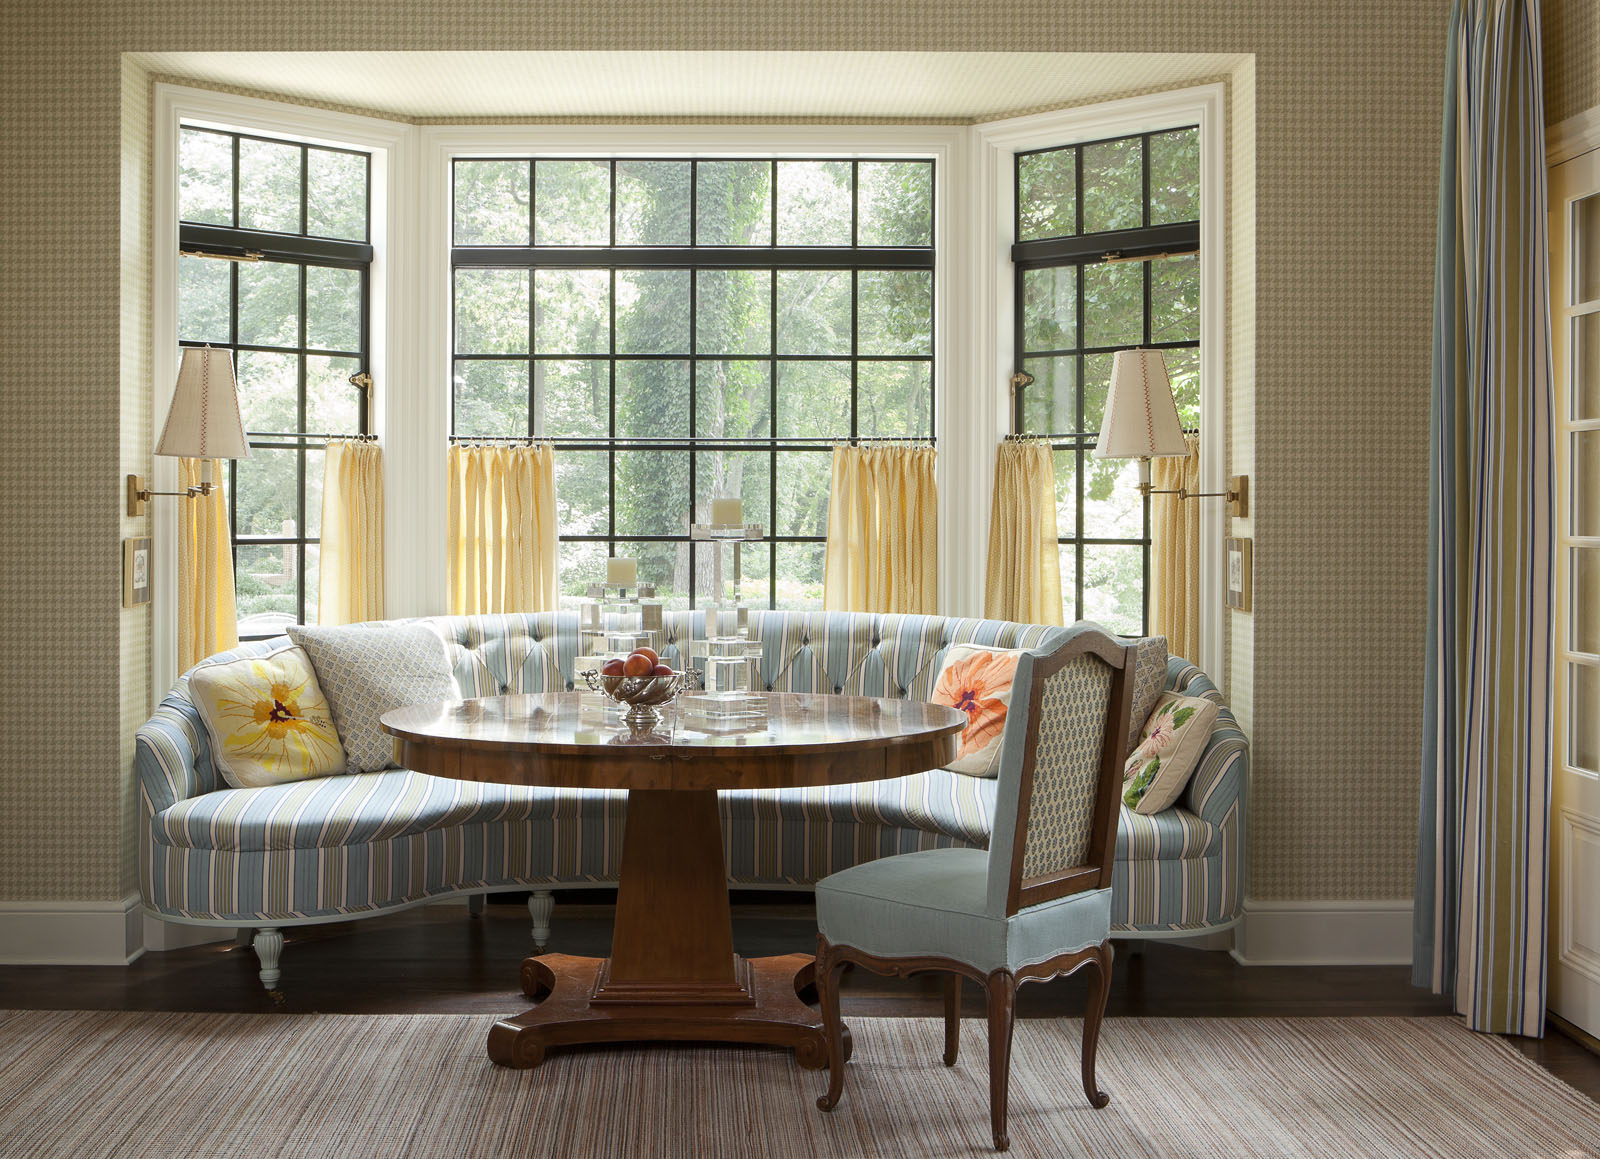 The breakfast room offers a sunny spot for casual meals. Isbell designed the banquette and dining table, the sconces are by  Ann-Morris , and the wall covering is a  Schumacher grass cloth.